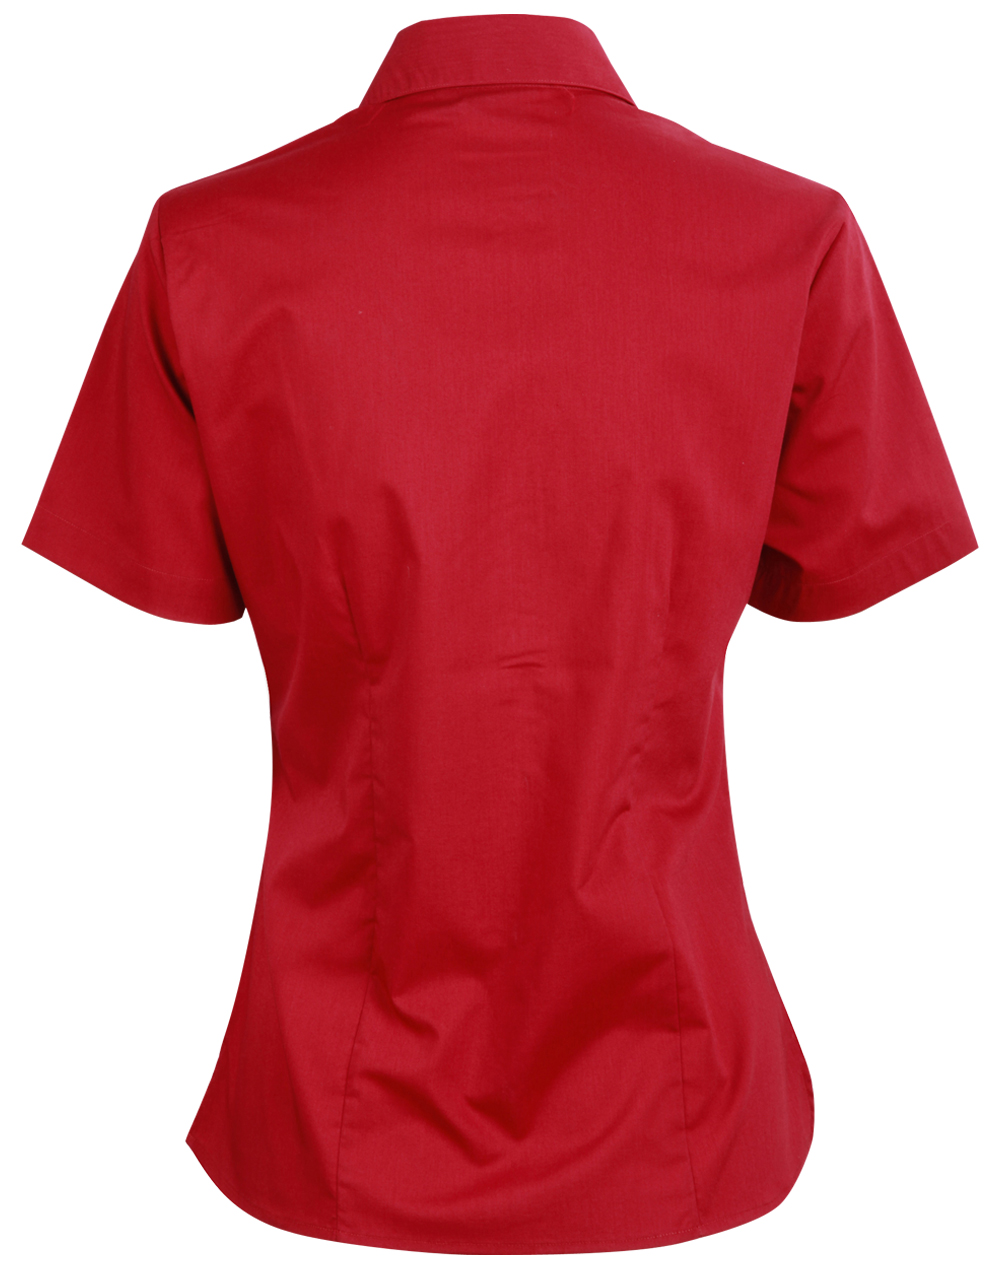 https://s3-ap-southeast-1.amazonaws.com/ws-imgs/BUSINESSSHIRTS/BS07S_CherryRed_Back.jpg